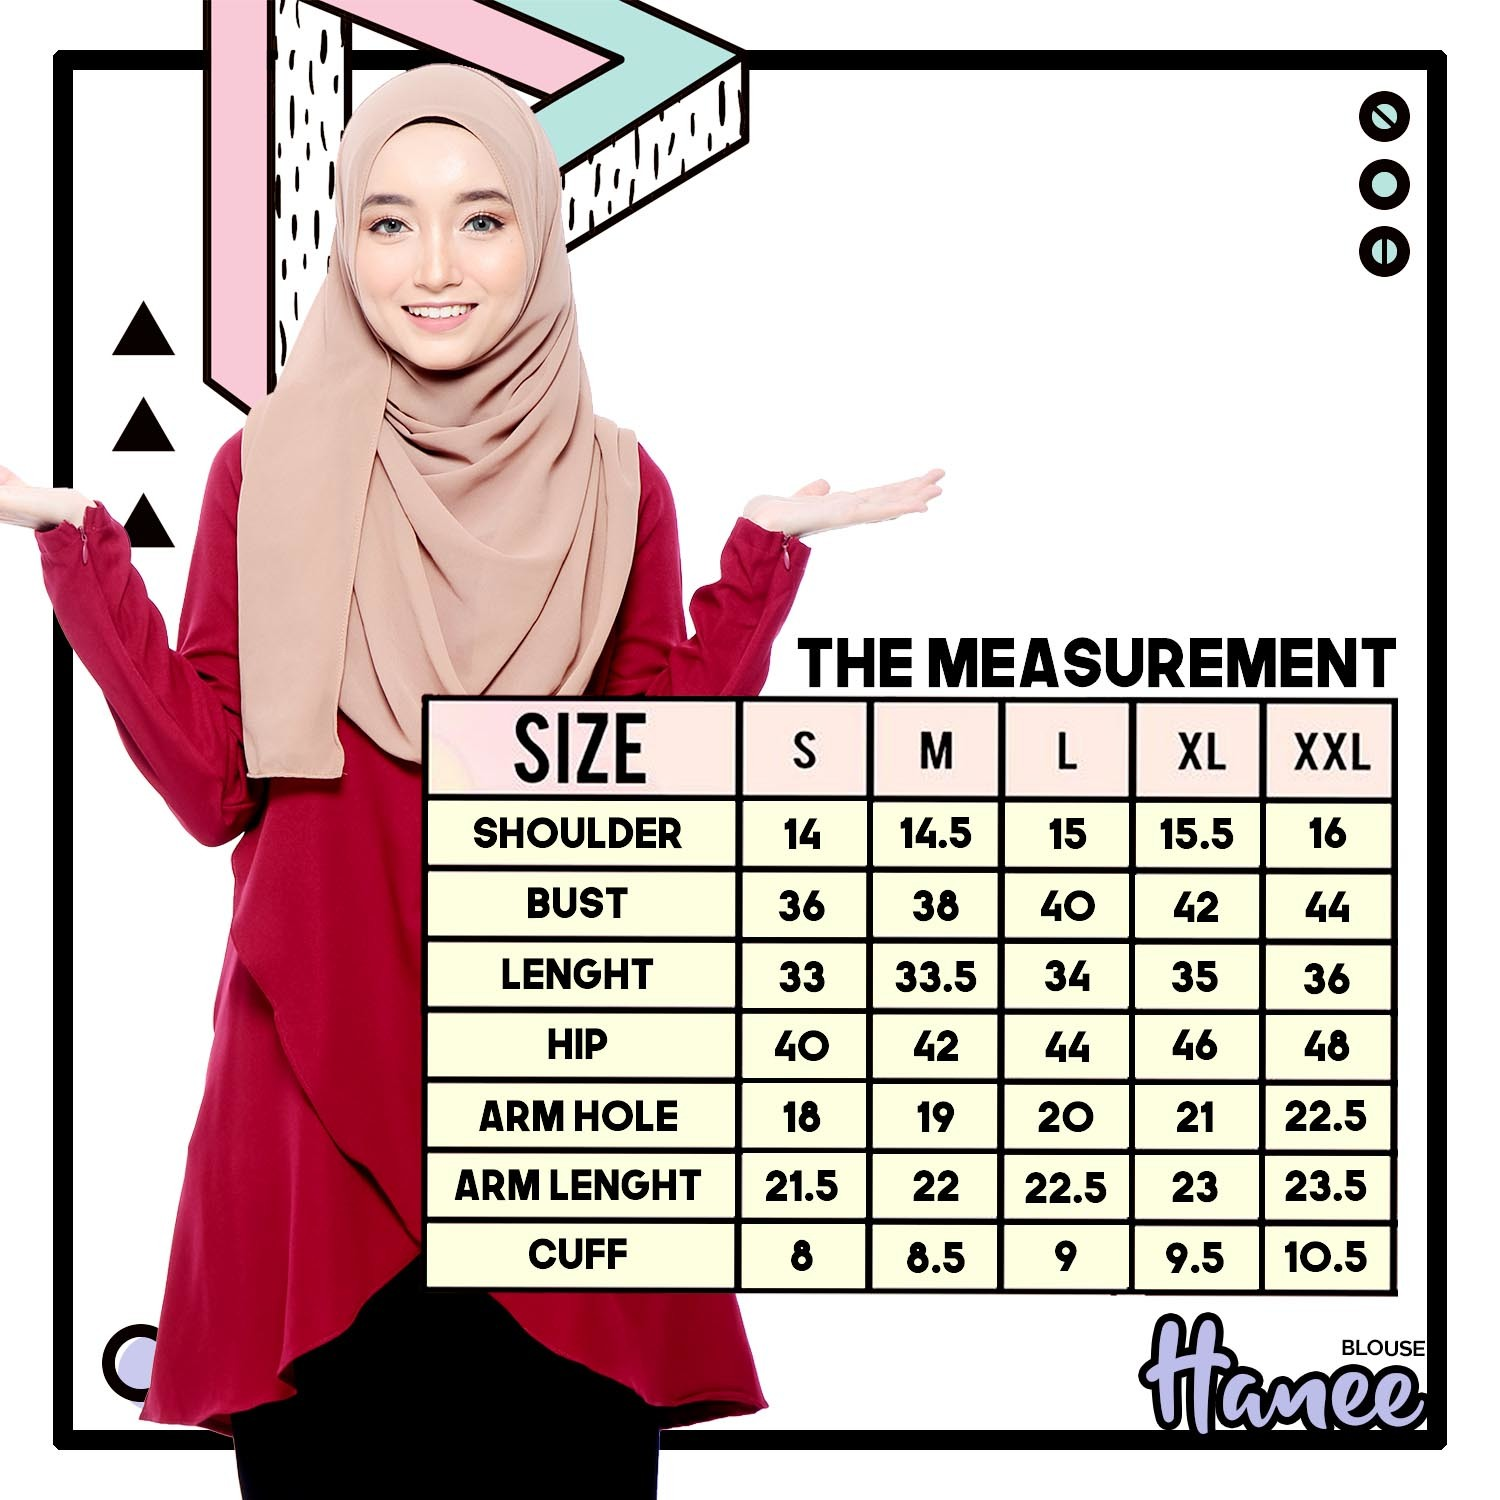 Measuremen-blouse-hanee-murah